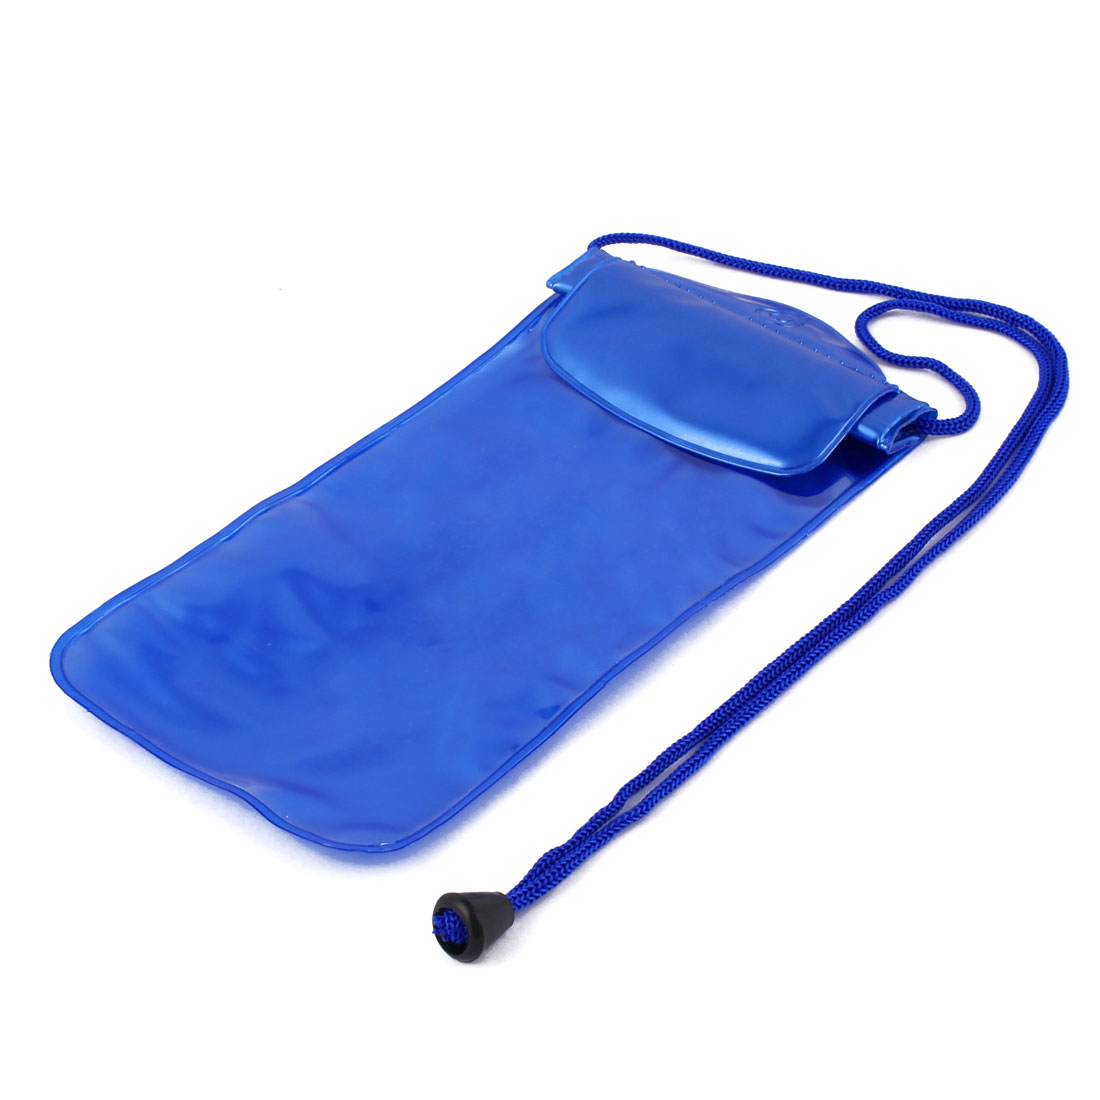 Cell Phone PVC Water Resistance Case Dry Bag Pouch Protective Holder Blue